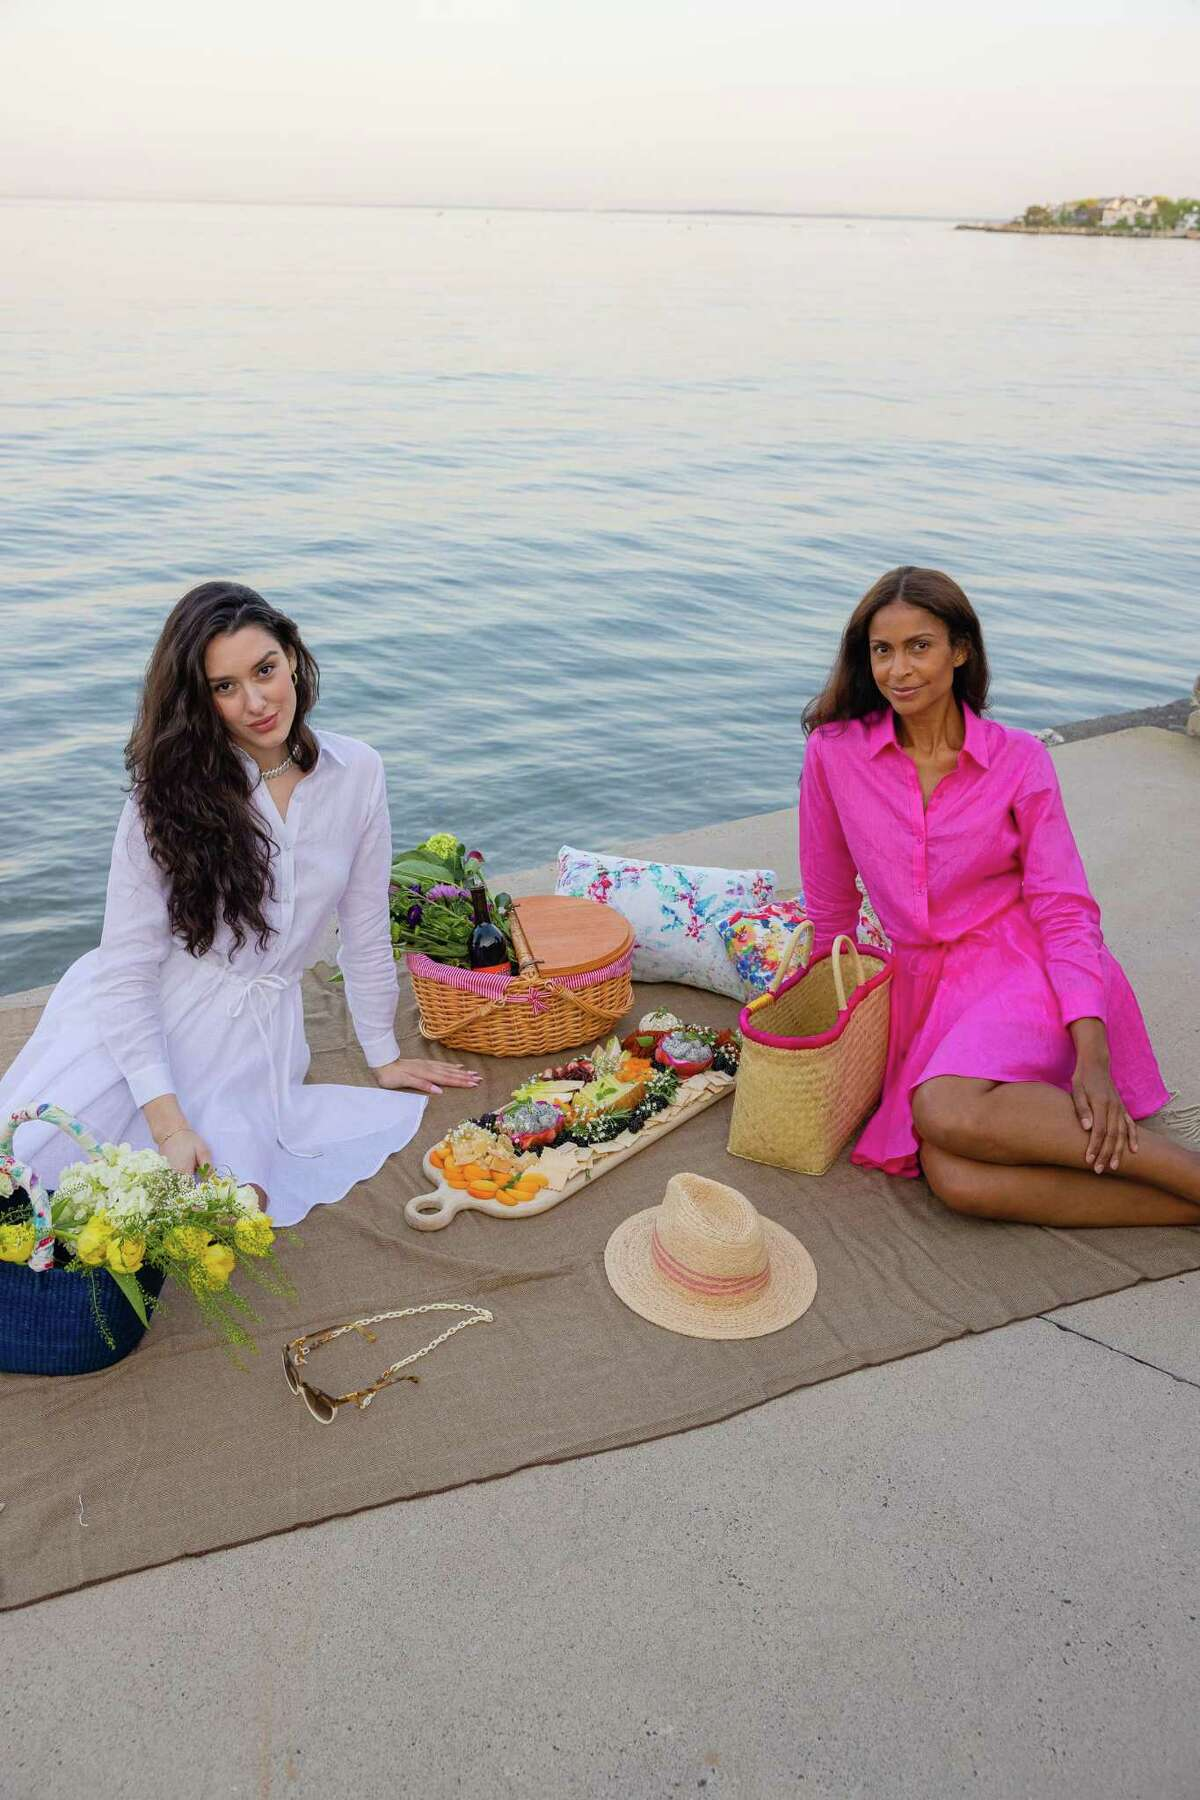 CariCapri is a eco-friendly clothing company based in Fairfield County.